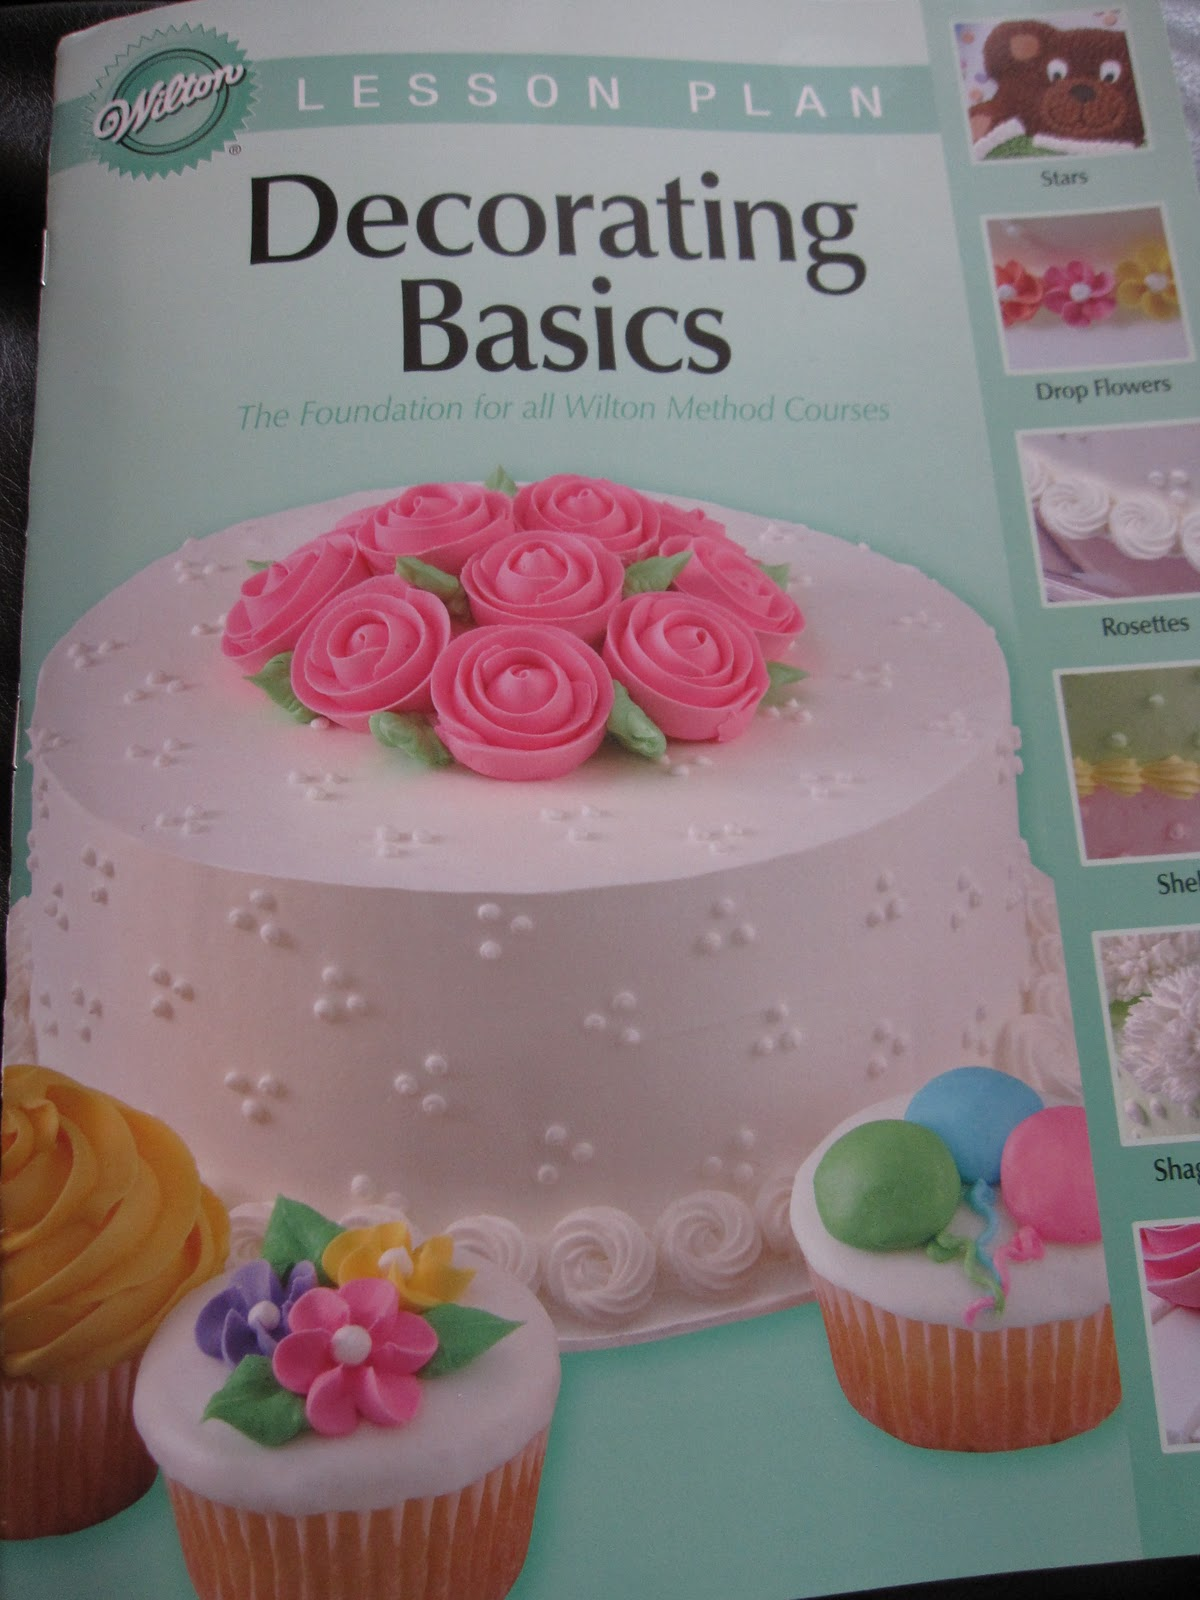 Michaels Cake Decorating Kit For Class : Michael s Basic Cake Decorating Class - Day 1 - She Bakes Here